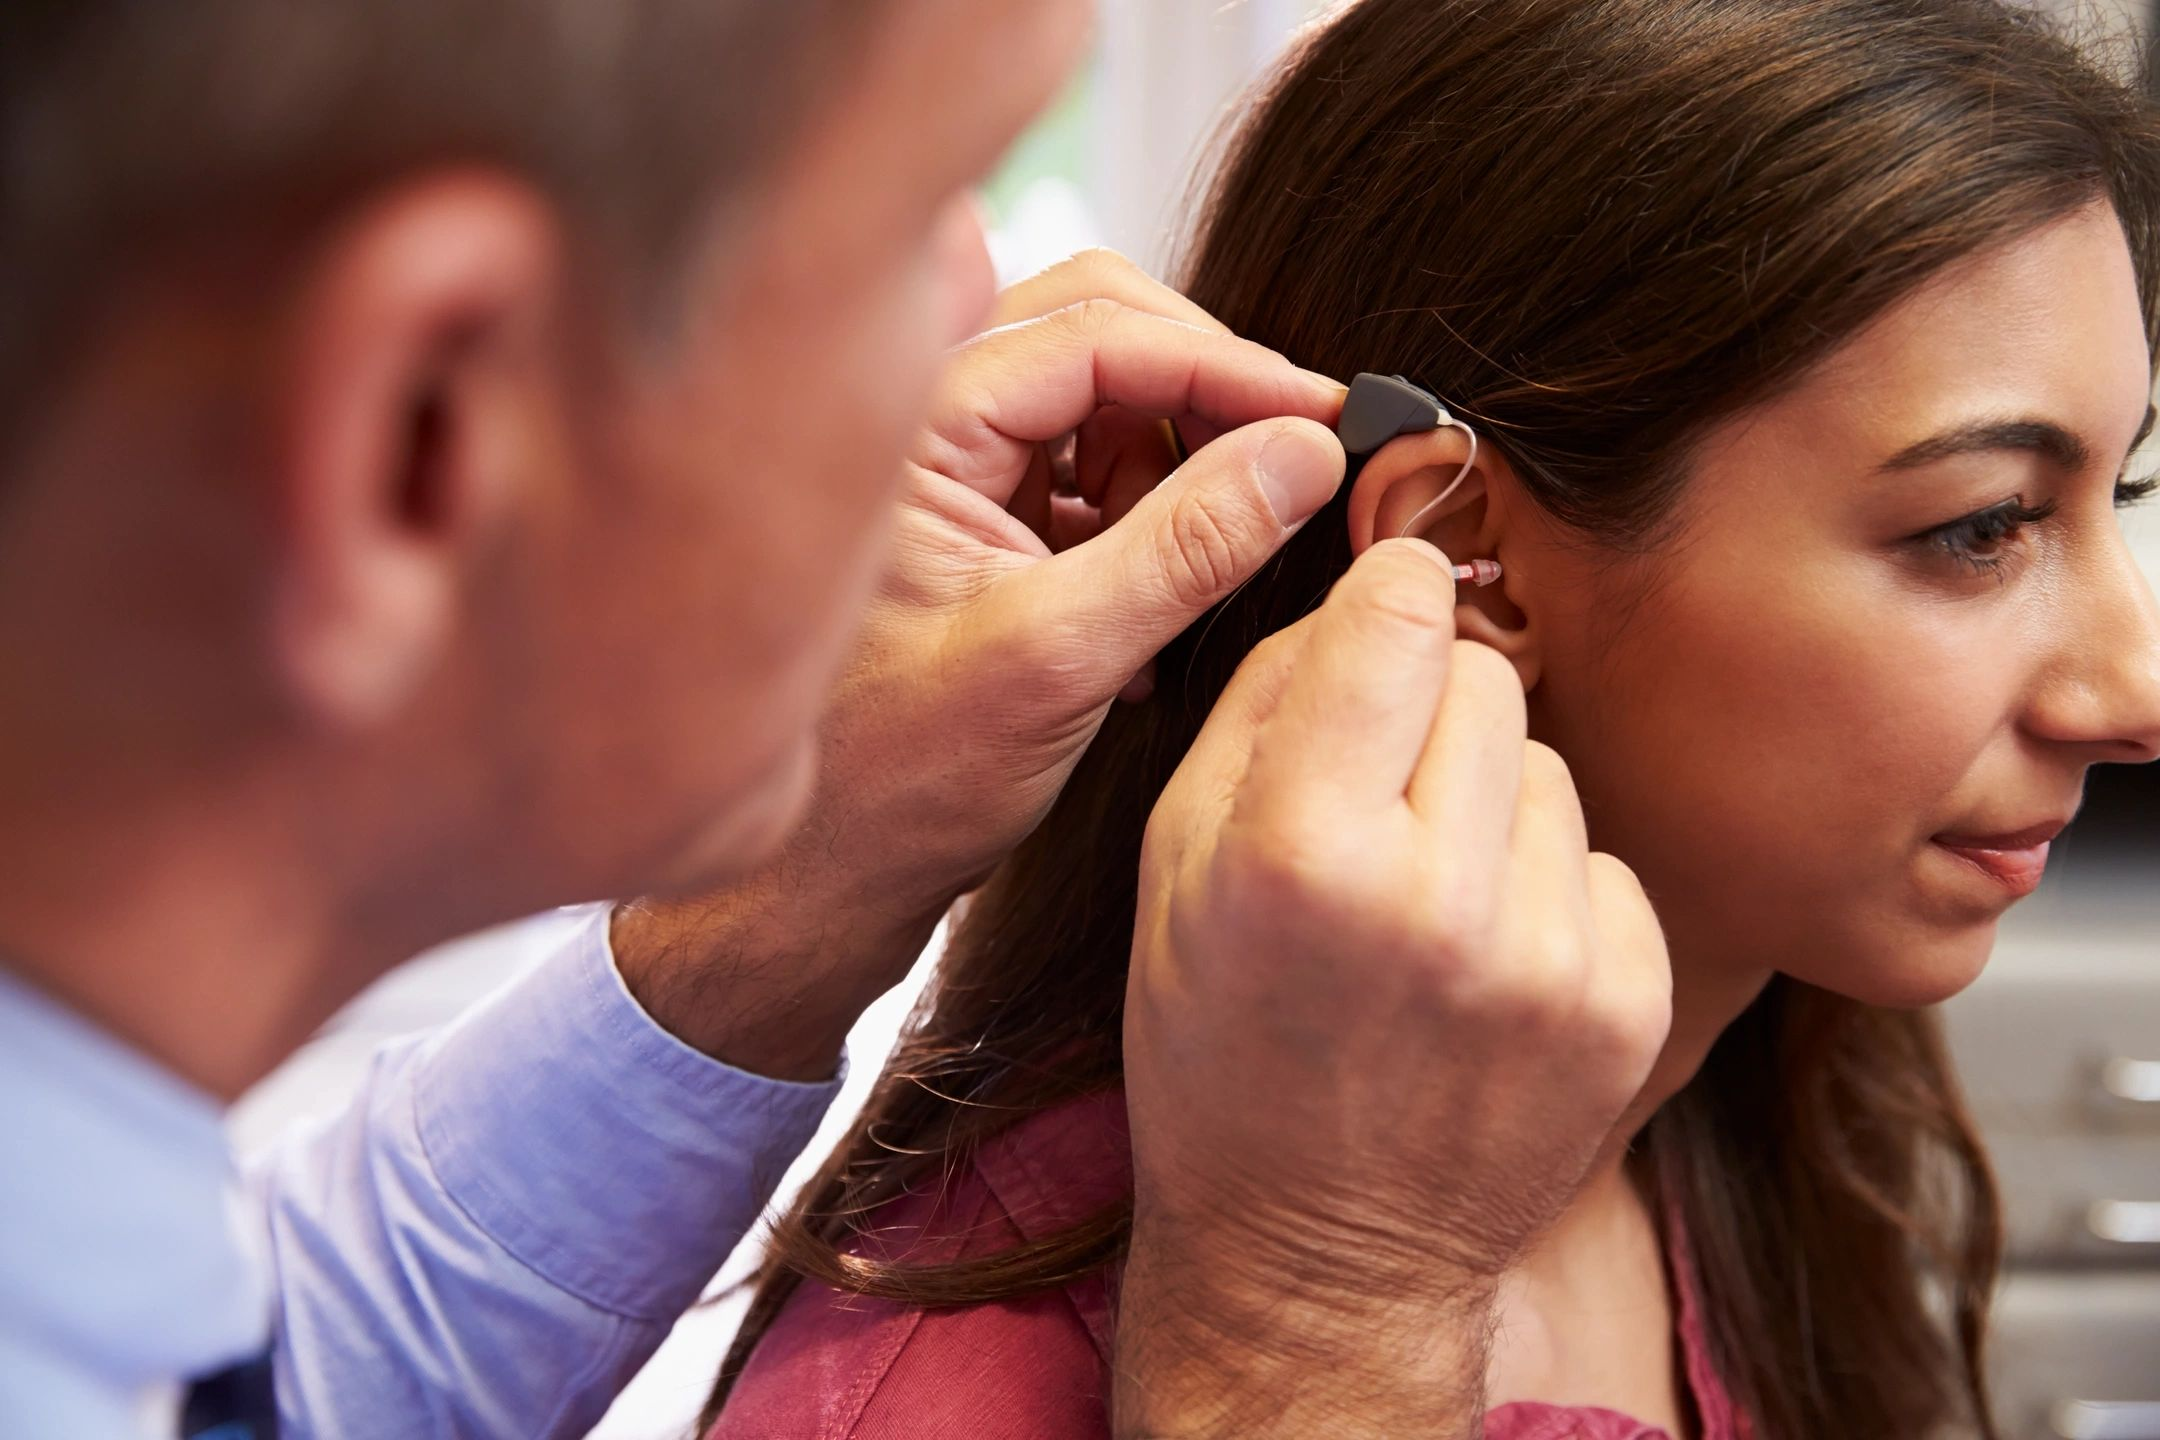 A picture of a young woman getting fitted for a hearing aid